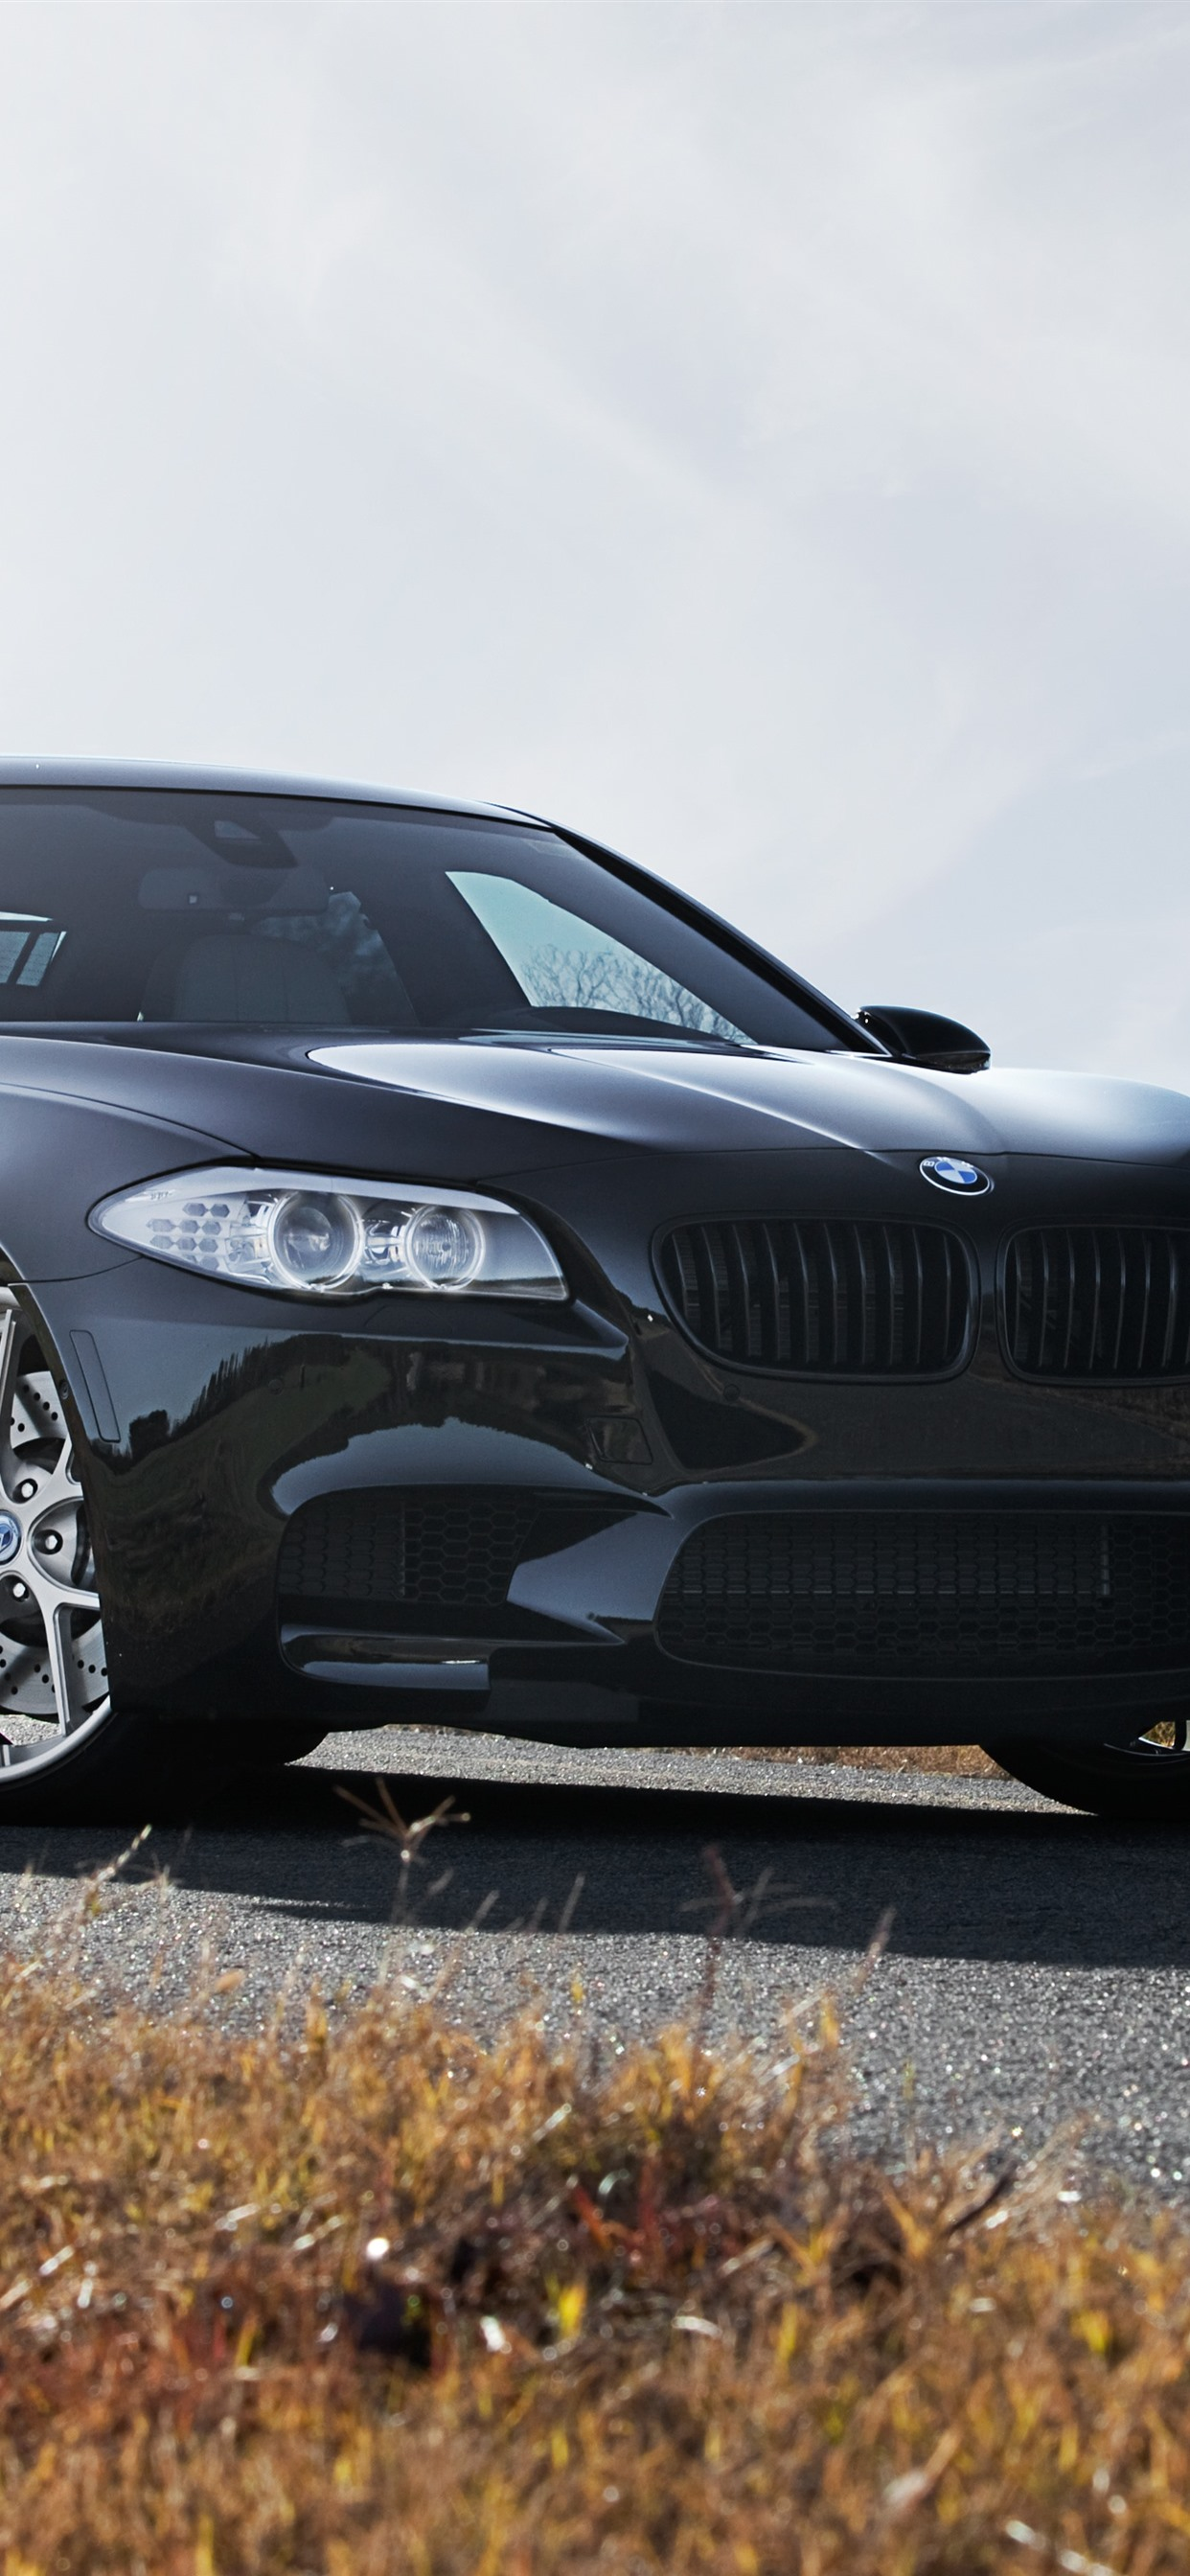 Iphone Wallpaper Bmw F10 M5 Black Car Front View Bmw M5 Ultra Hd 1242x2688 Download Hd Wallpaper Wallpapertip